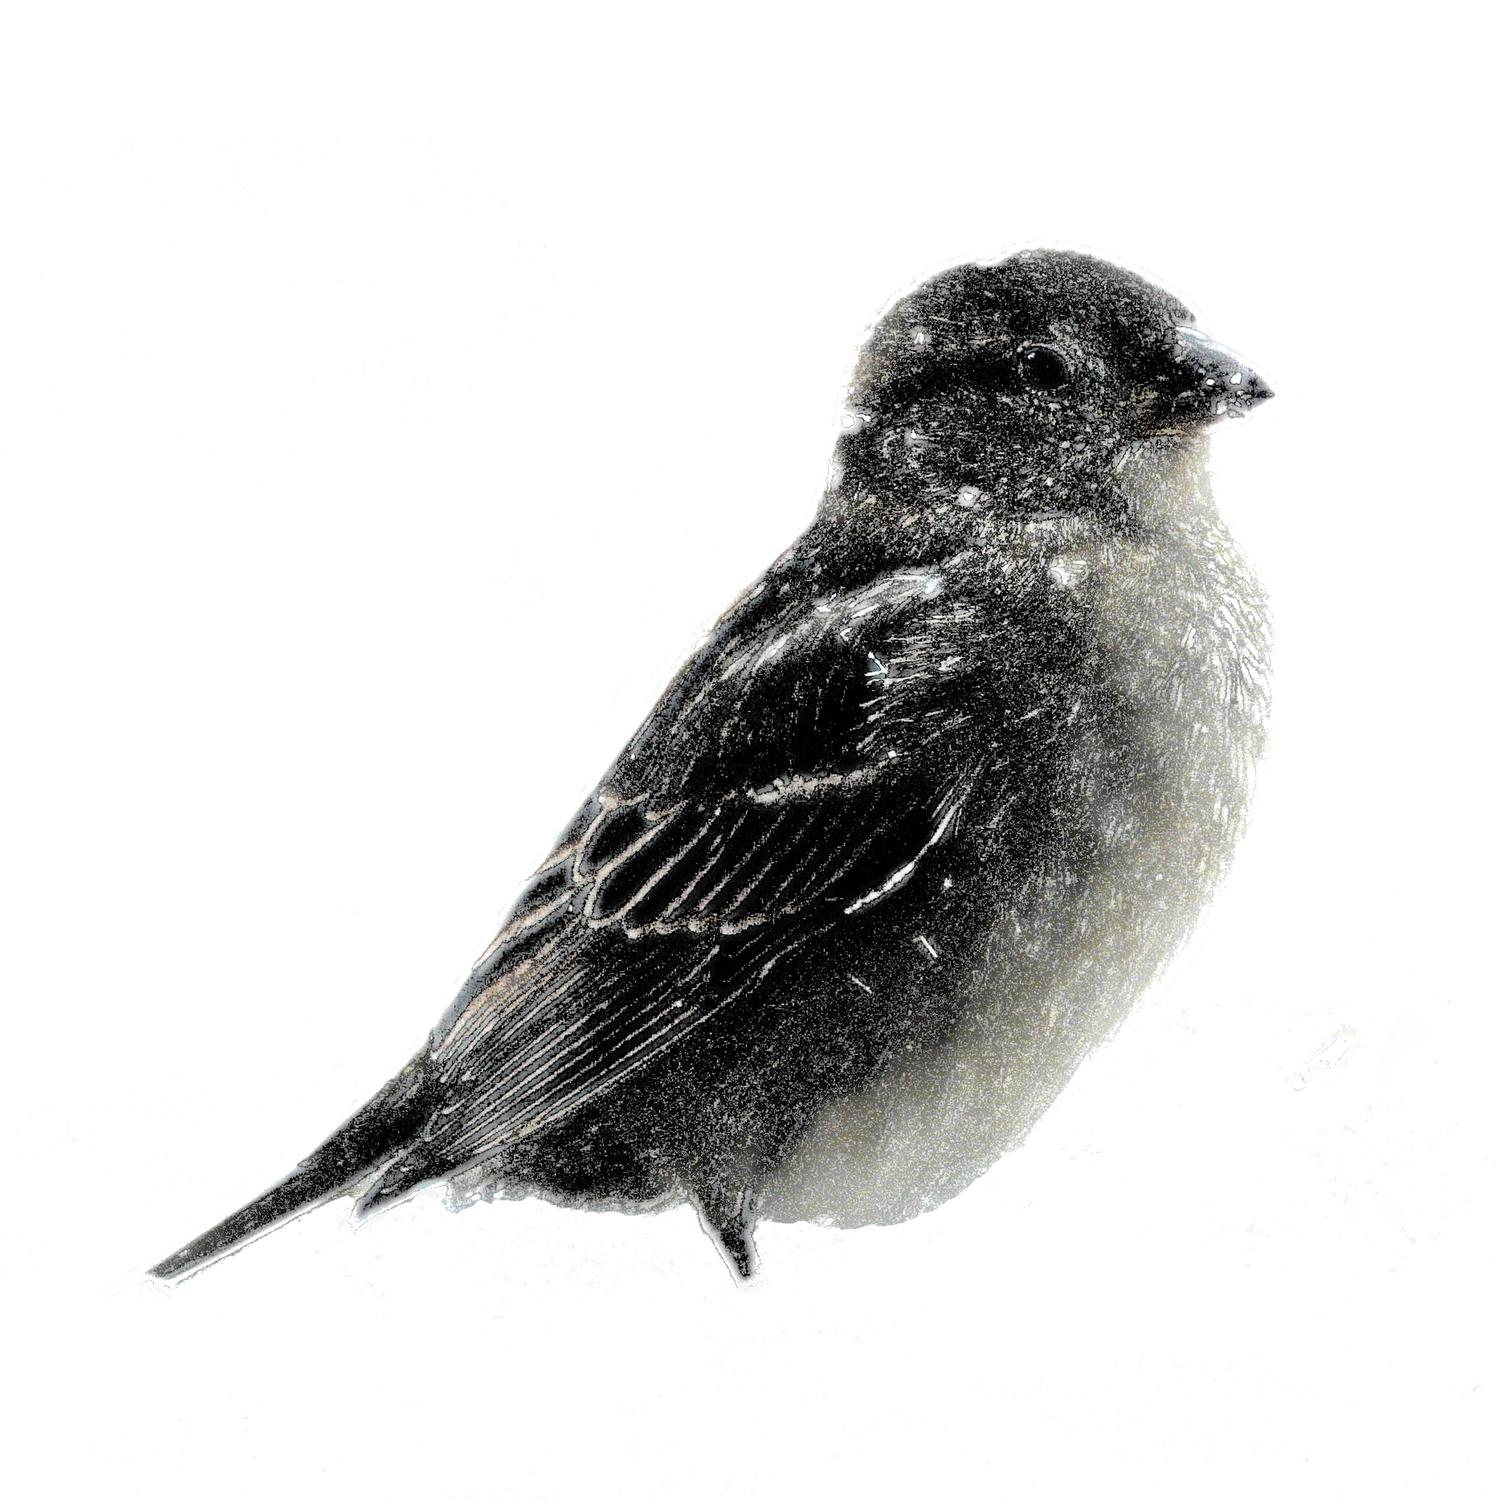 -  Panasonic DMC-FZ18 - Small bird in the snow in the manner of a mezzotint. - - art  - photography - by Tony Karp